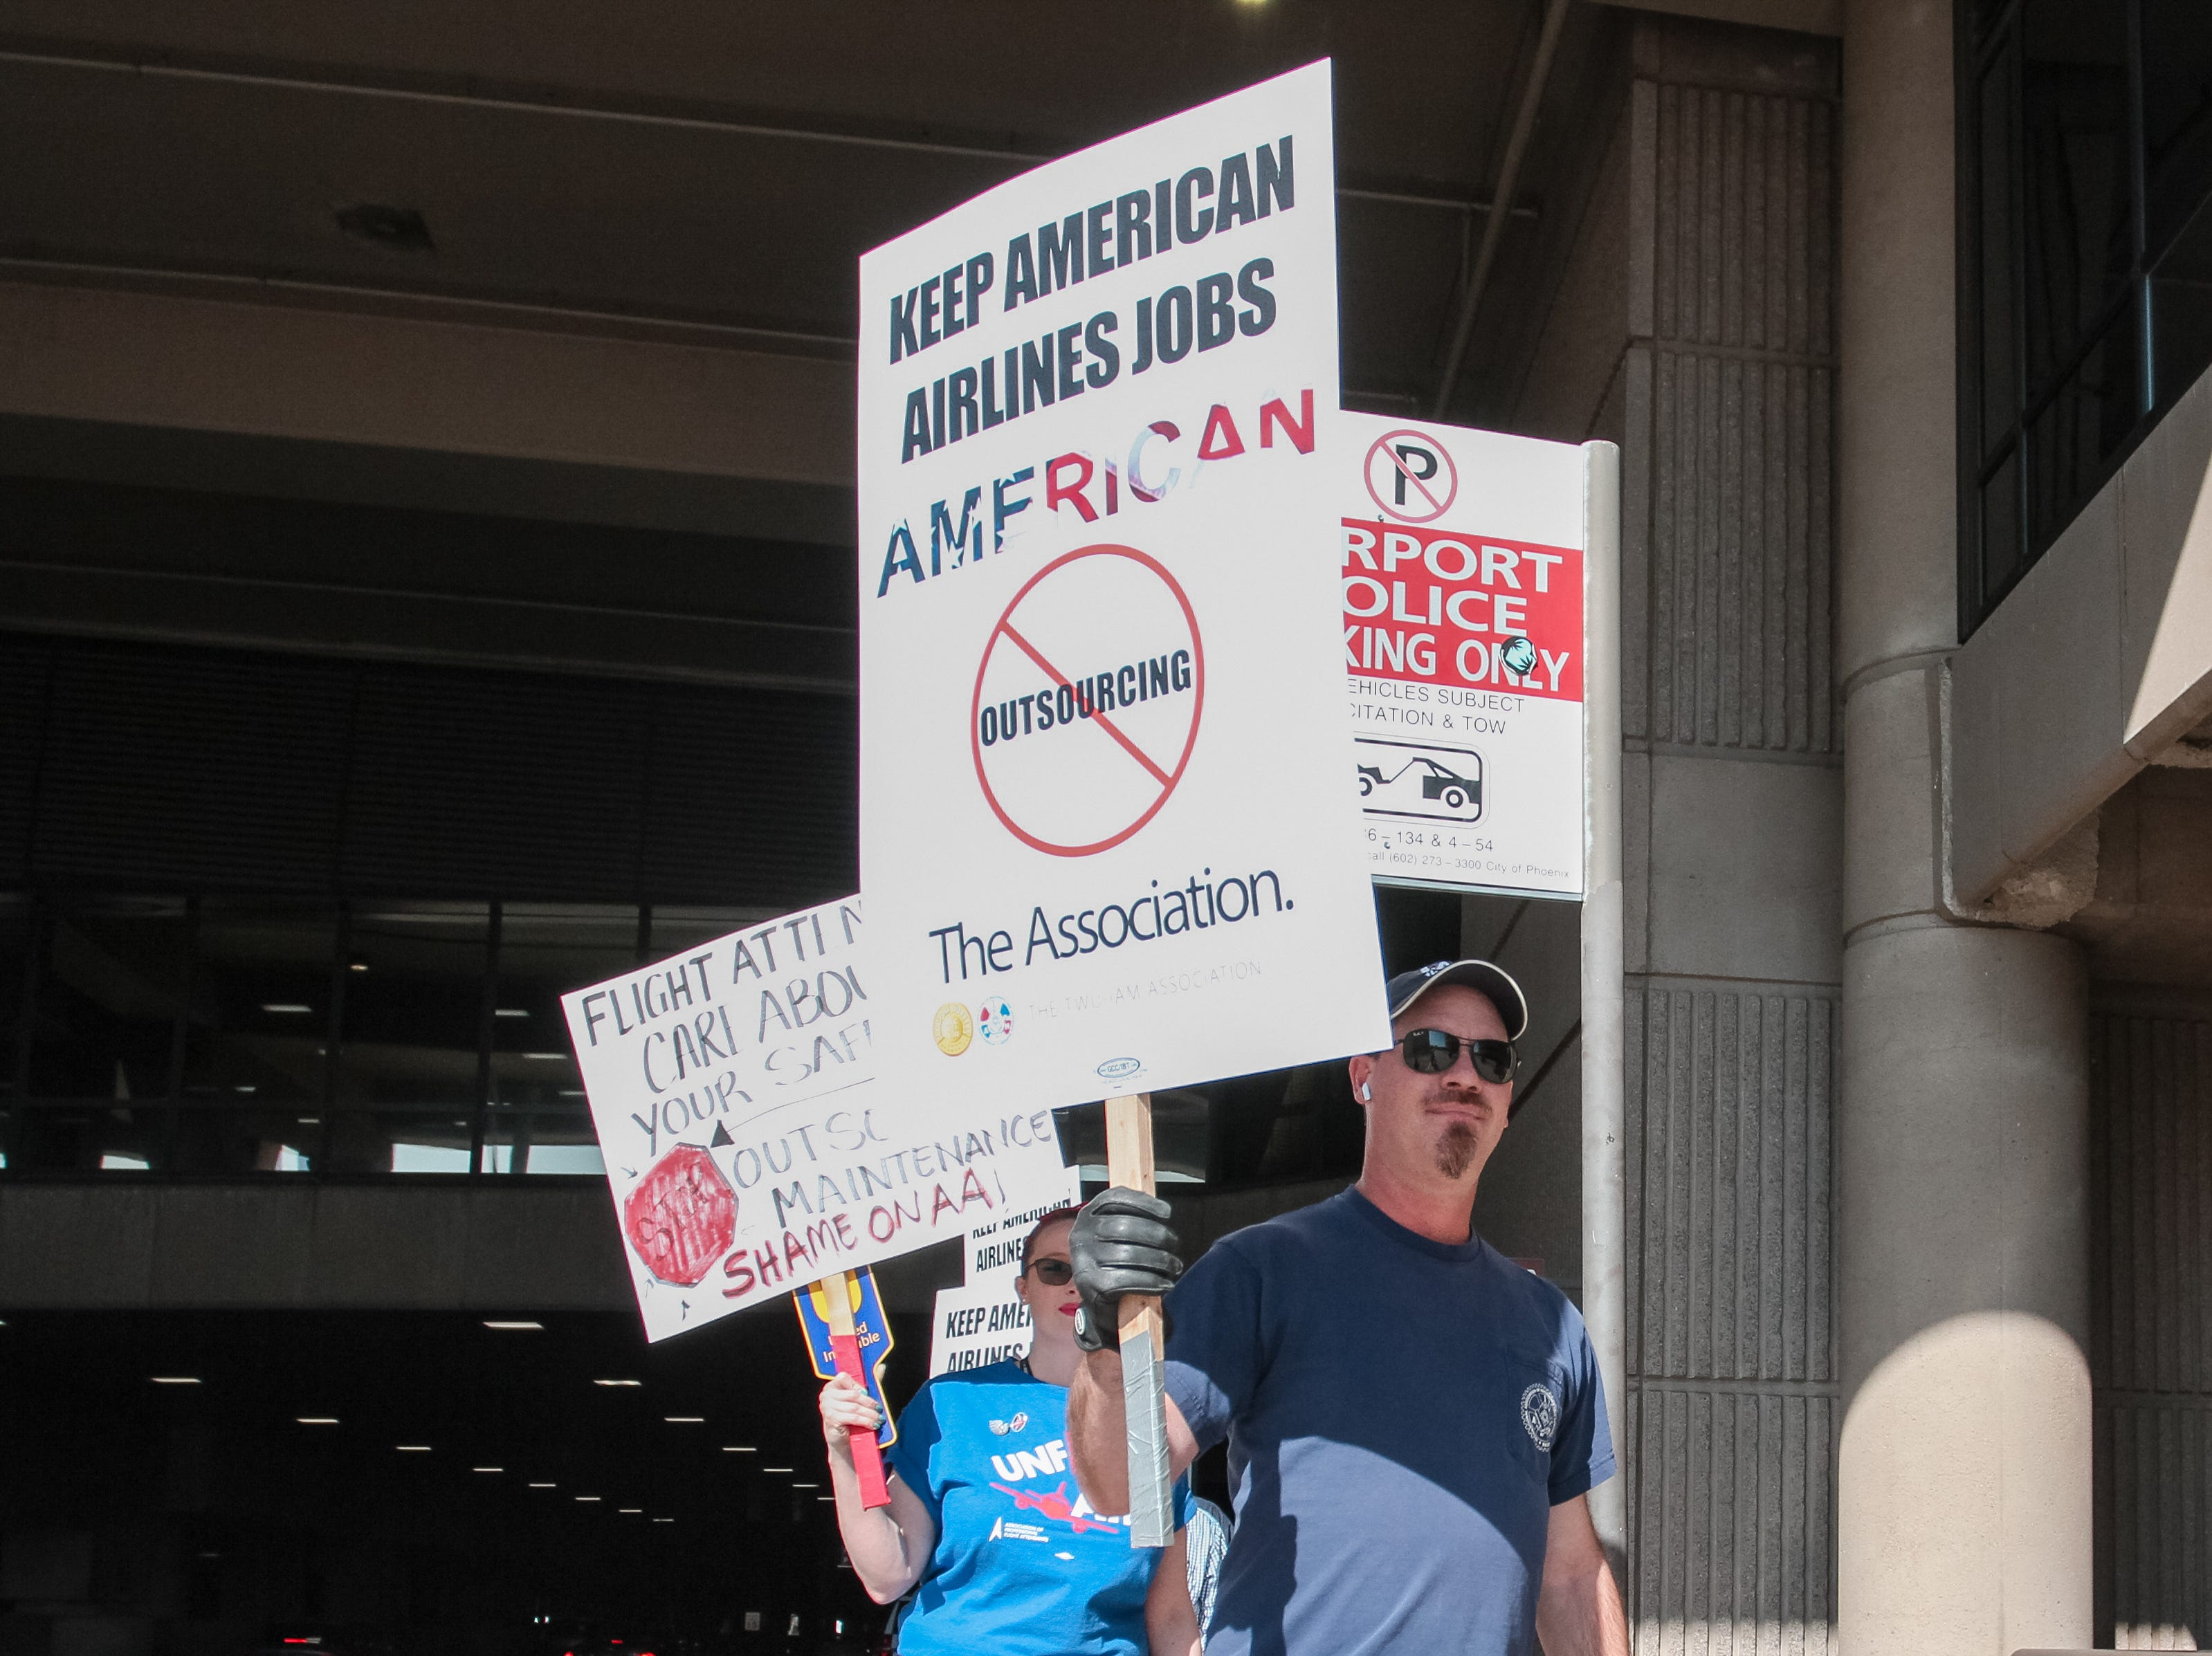 Dozens of picketers gather at Sky Harbor International Airport to protest American Airlines' treatment of employees, in Phoenix on March 28, 2019.